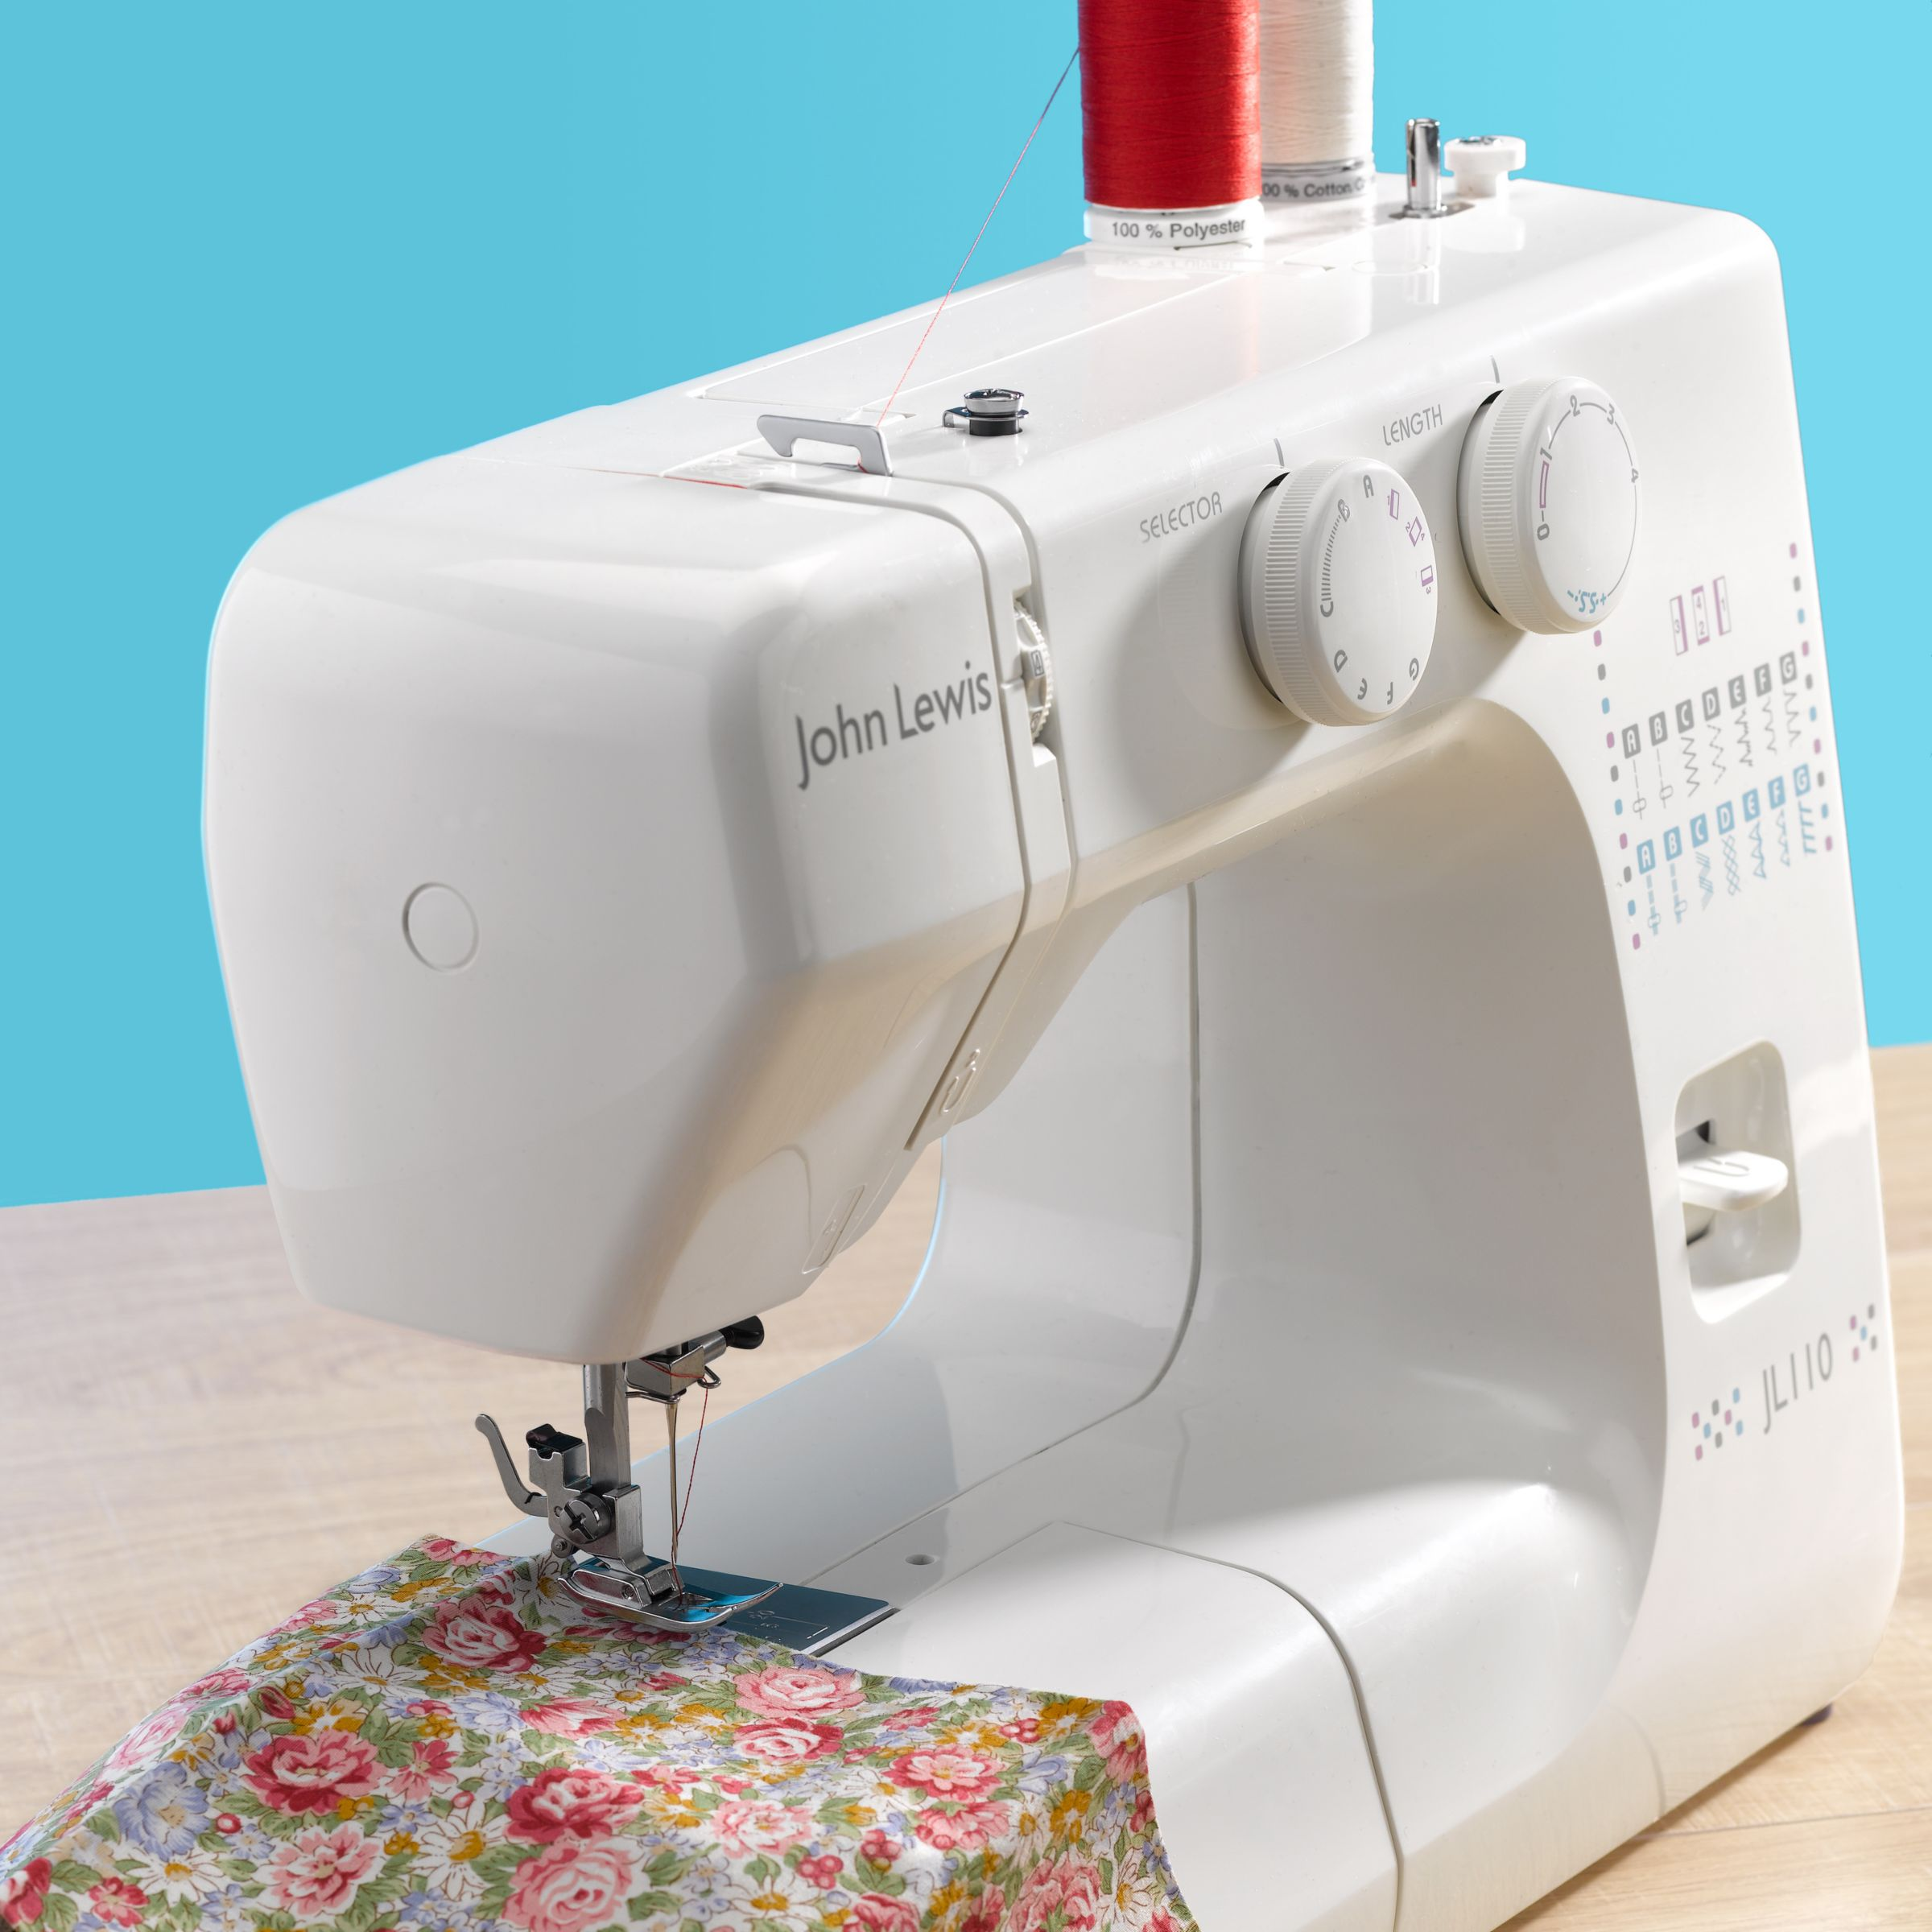 Video - Choosing a Sewing Machine Video